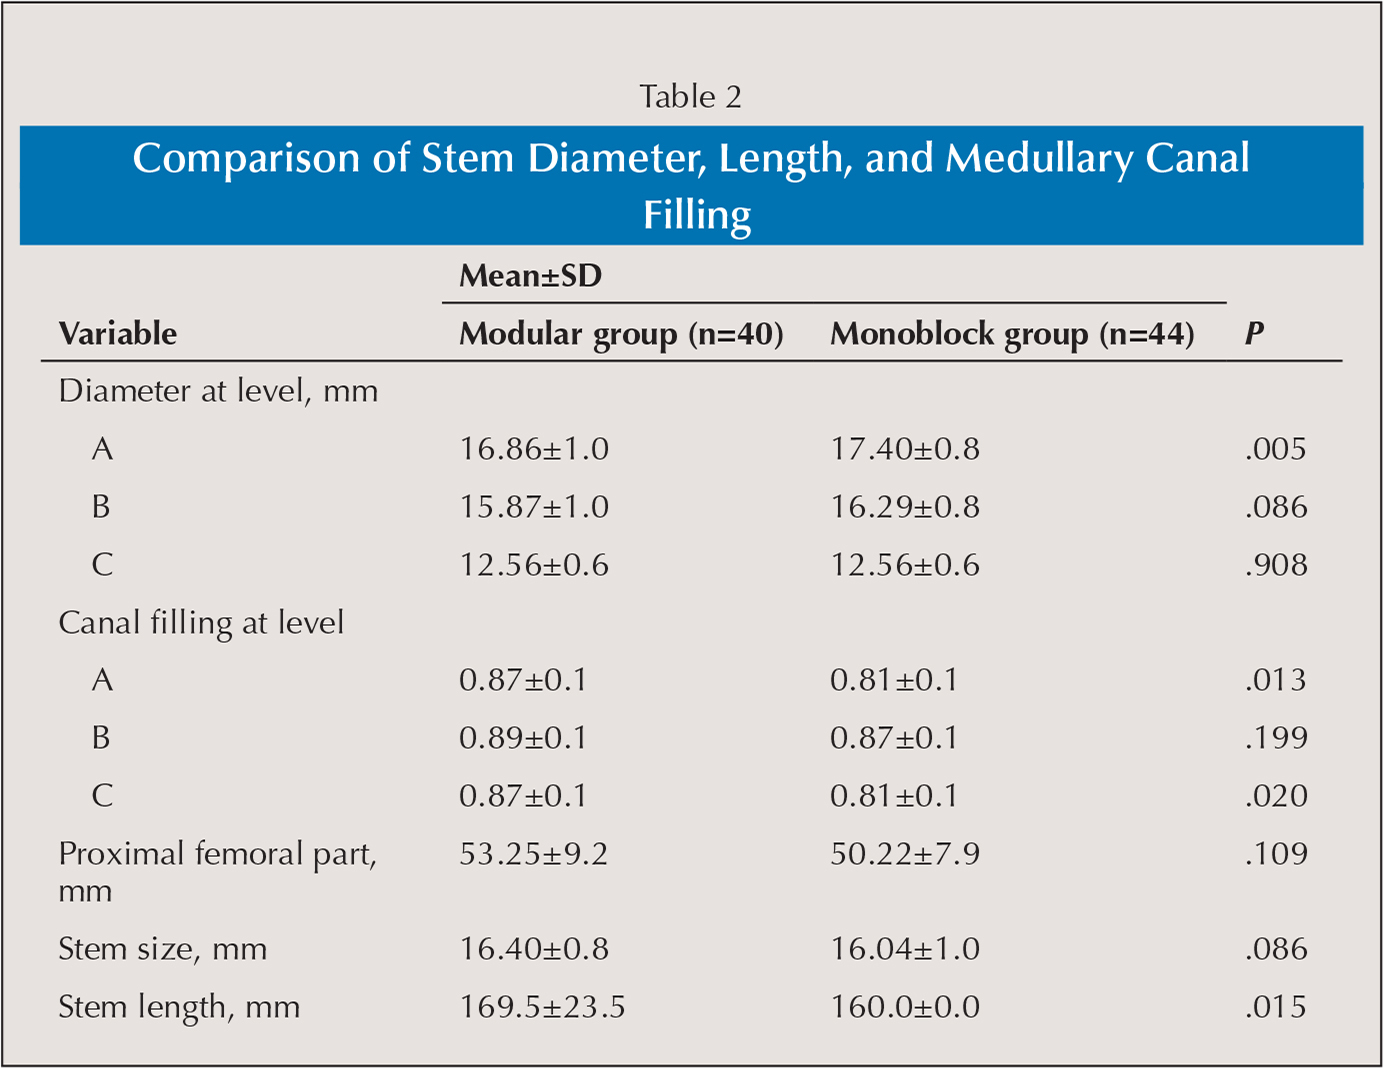 Comparison of Stem Diameter, Length, and Medullary Canal Filling